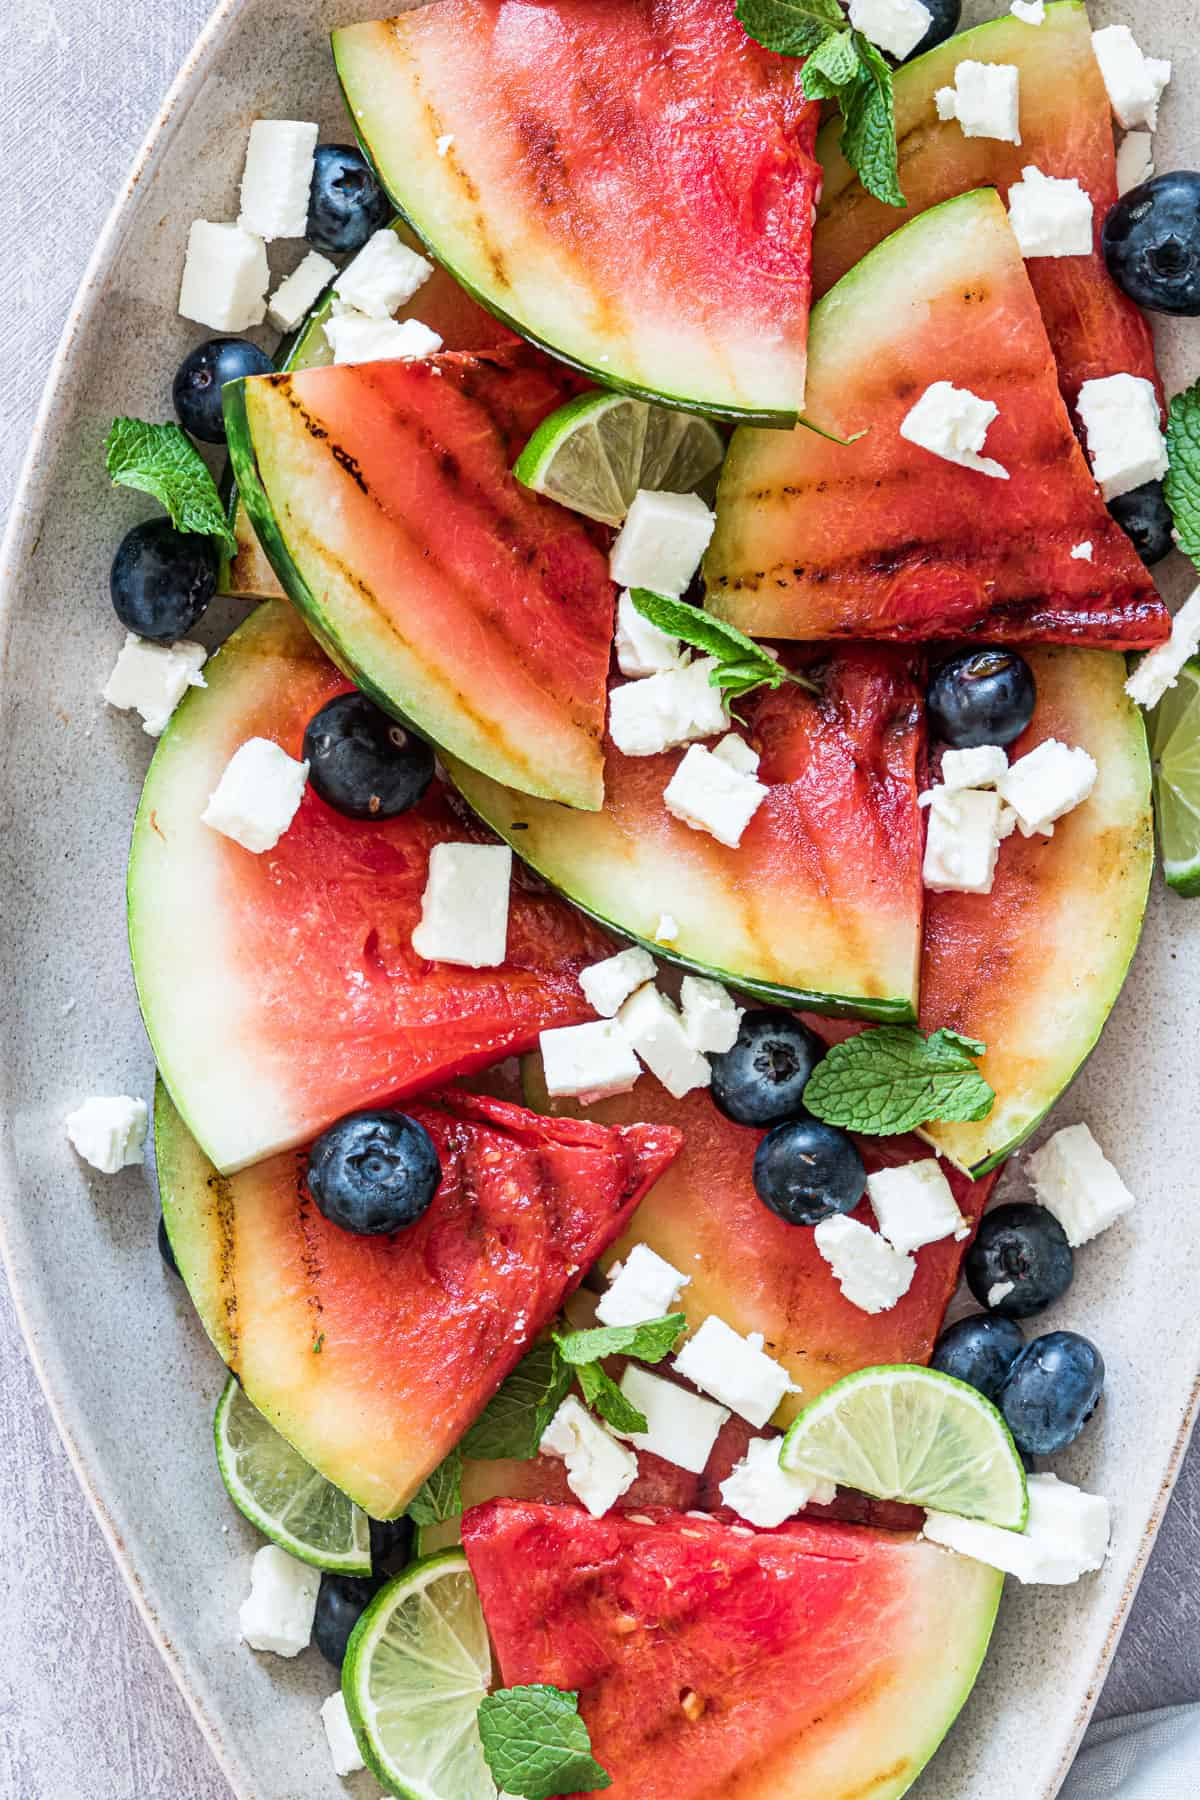 close up view of the grilled watermelon feta salad on a serving platter